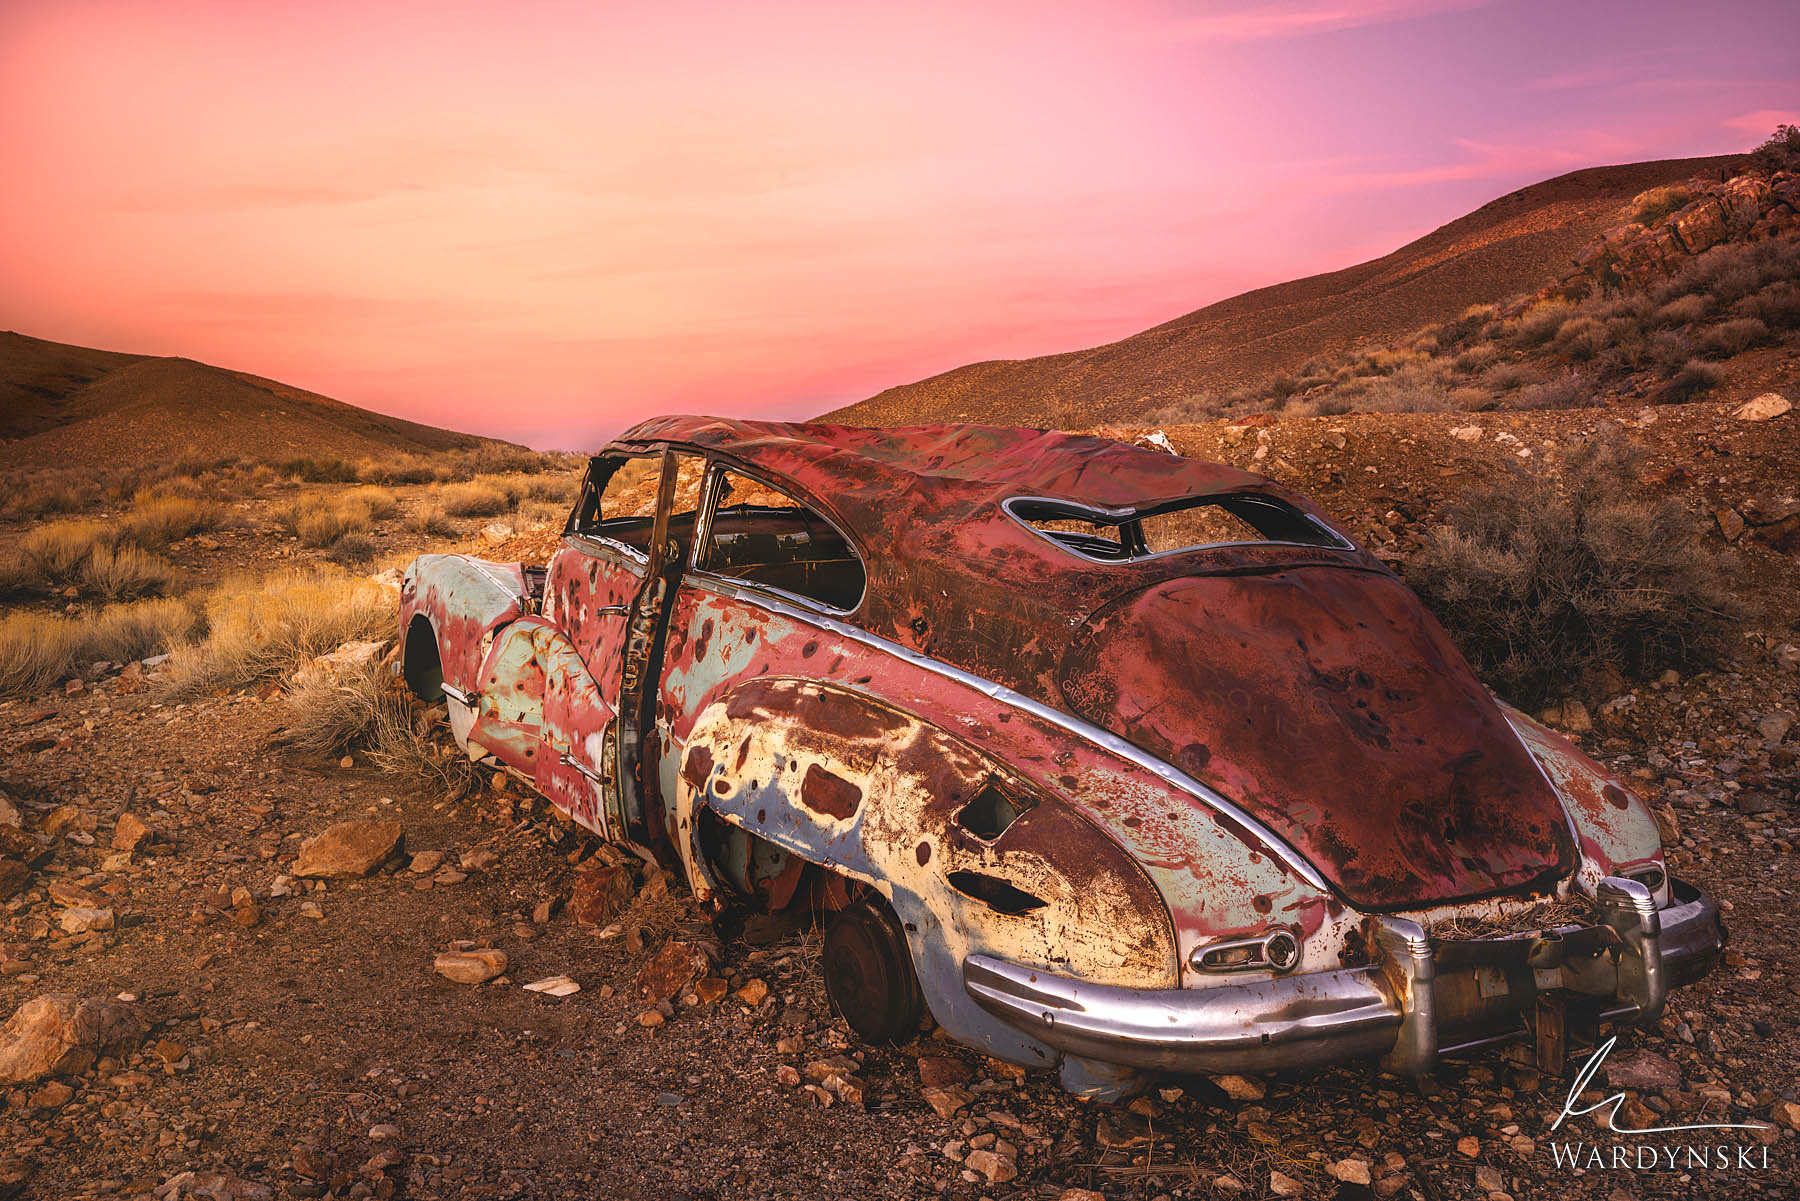 Fine Art Print | Limited Edition of 100  Deep in the desert of Death Valley National Park lies an old abandoned car. The once...